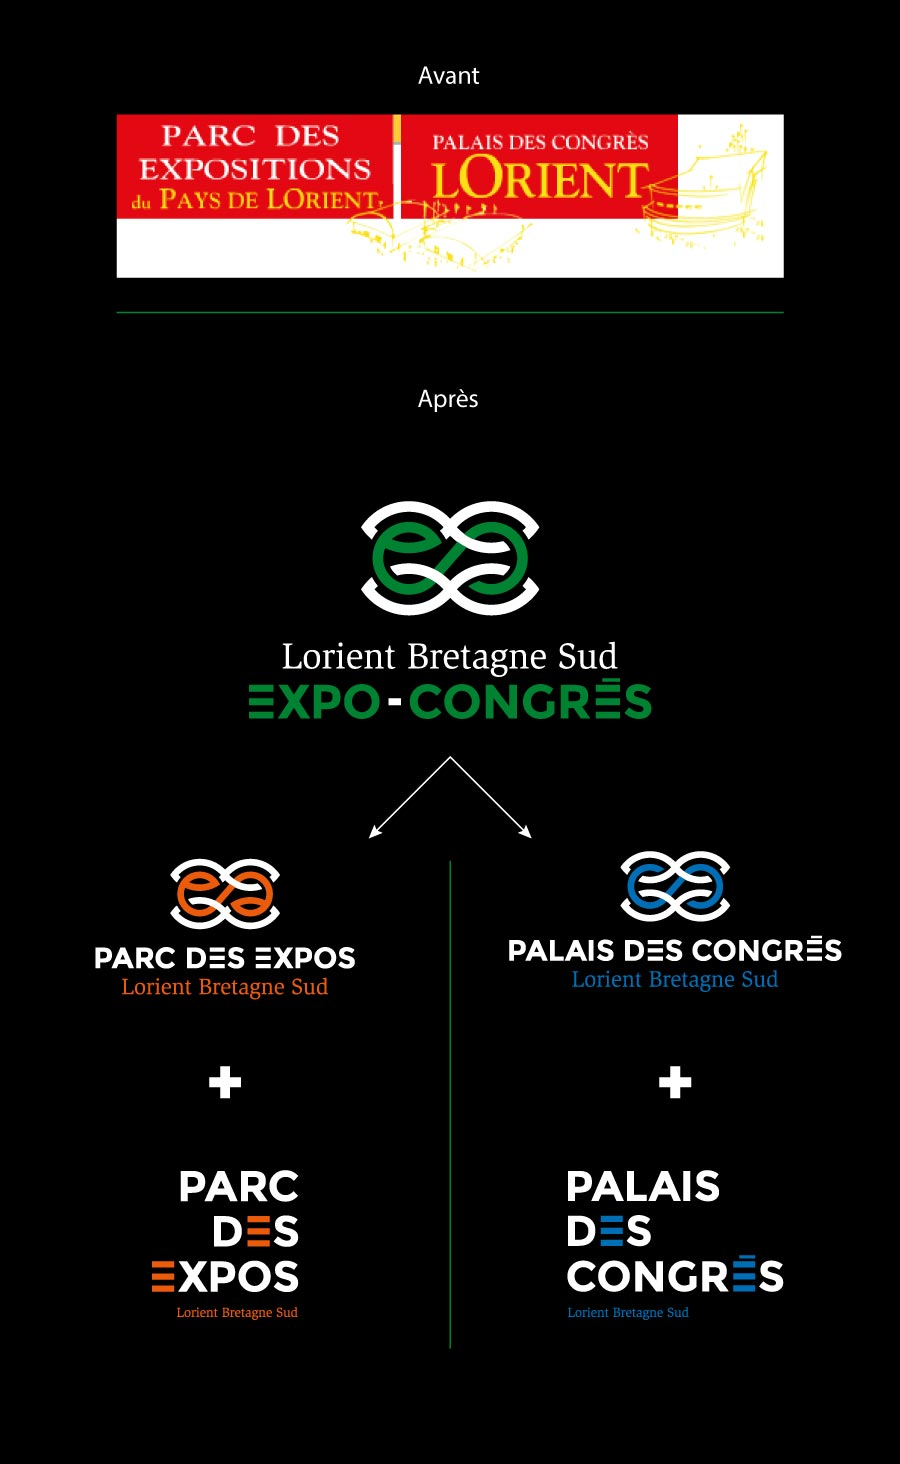 explication-logo-expo-congres